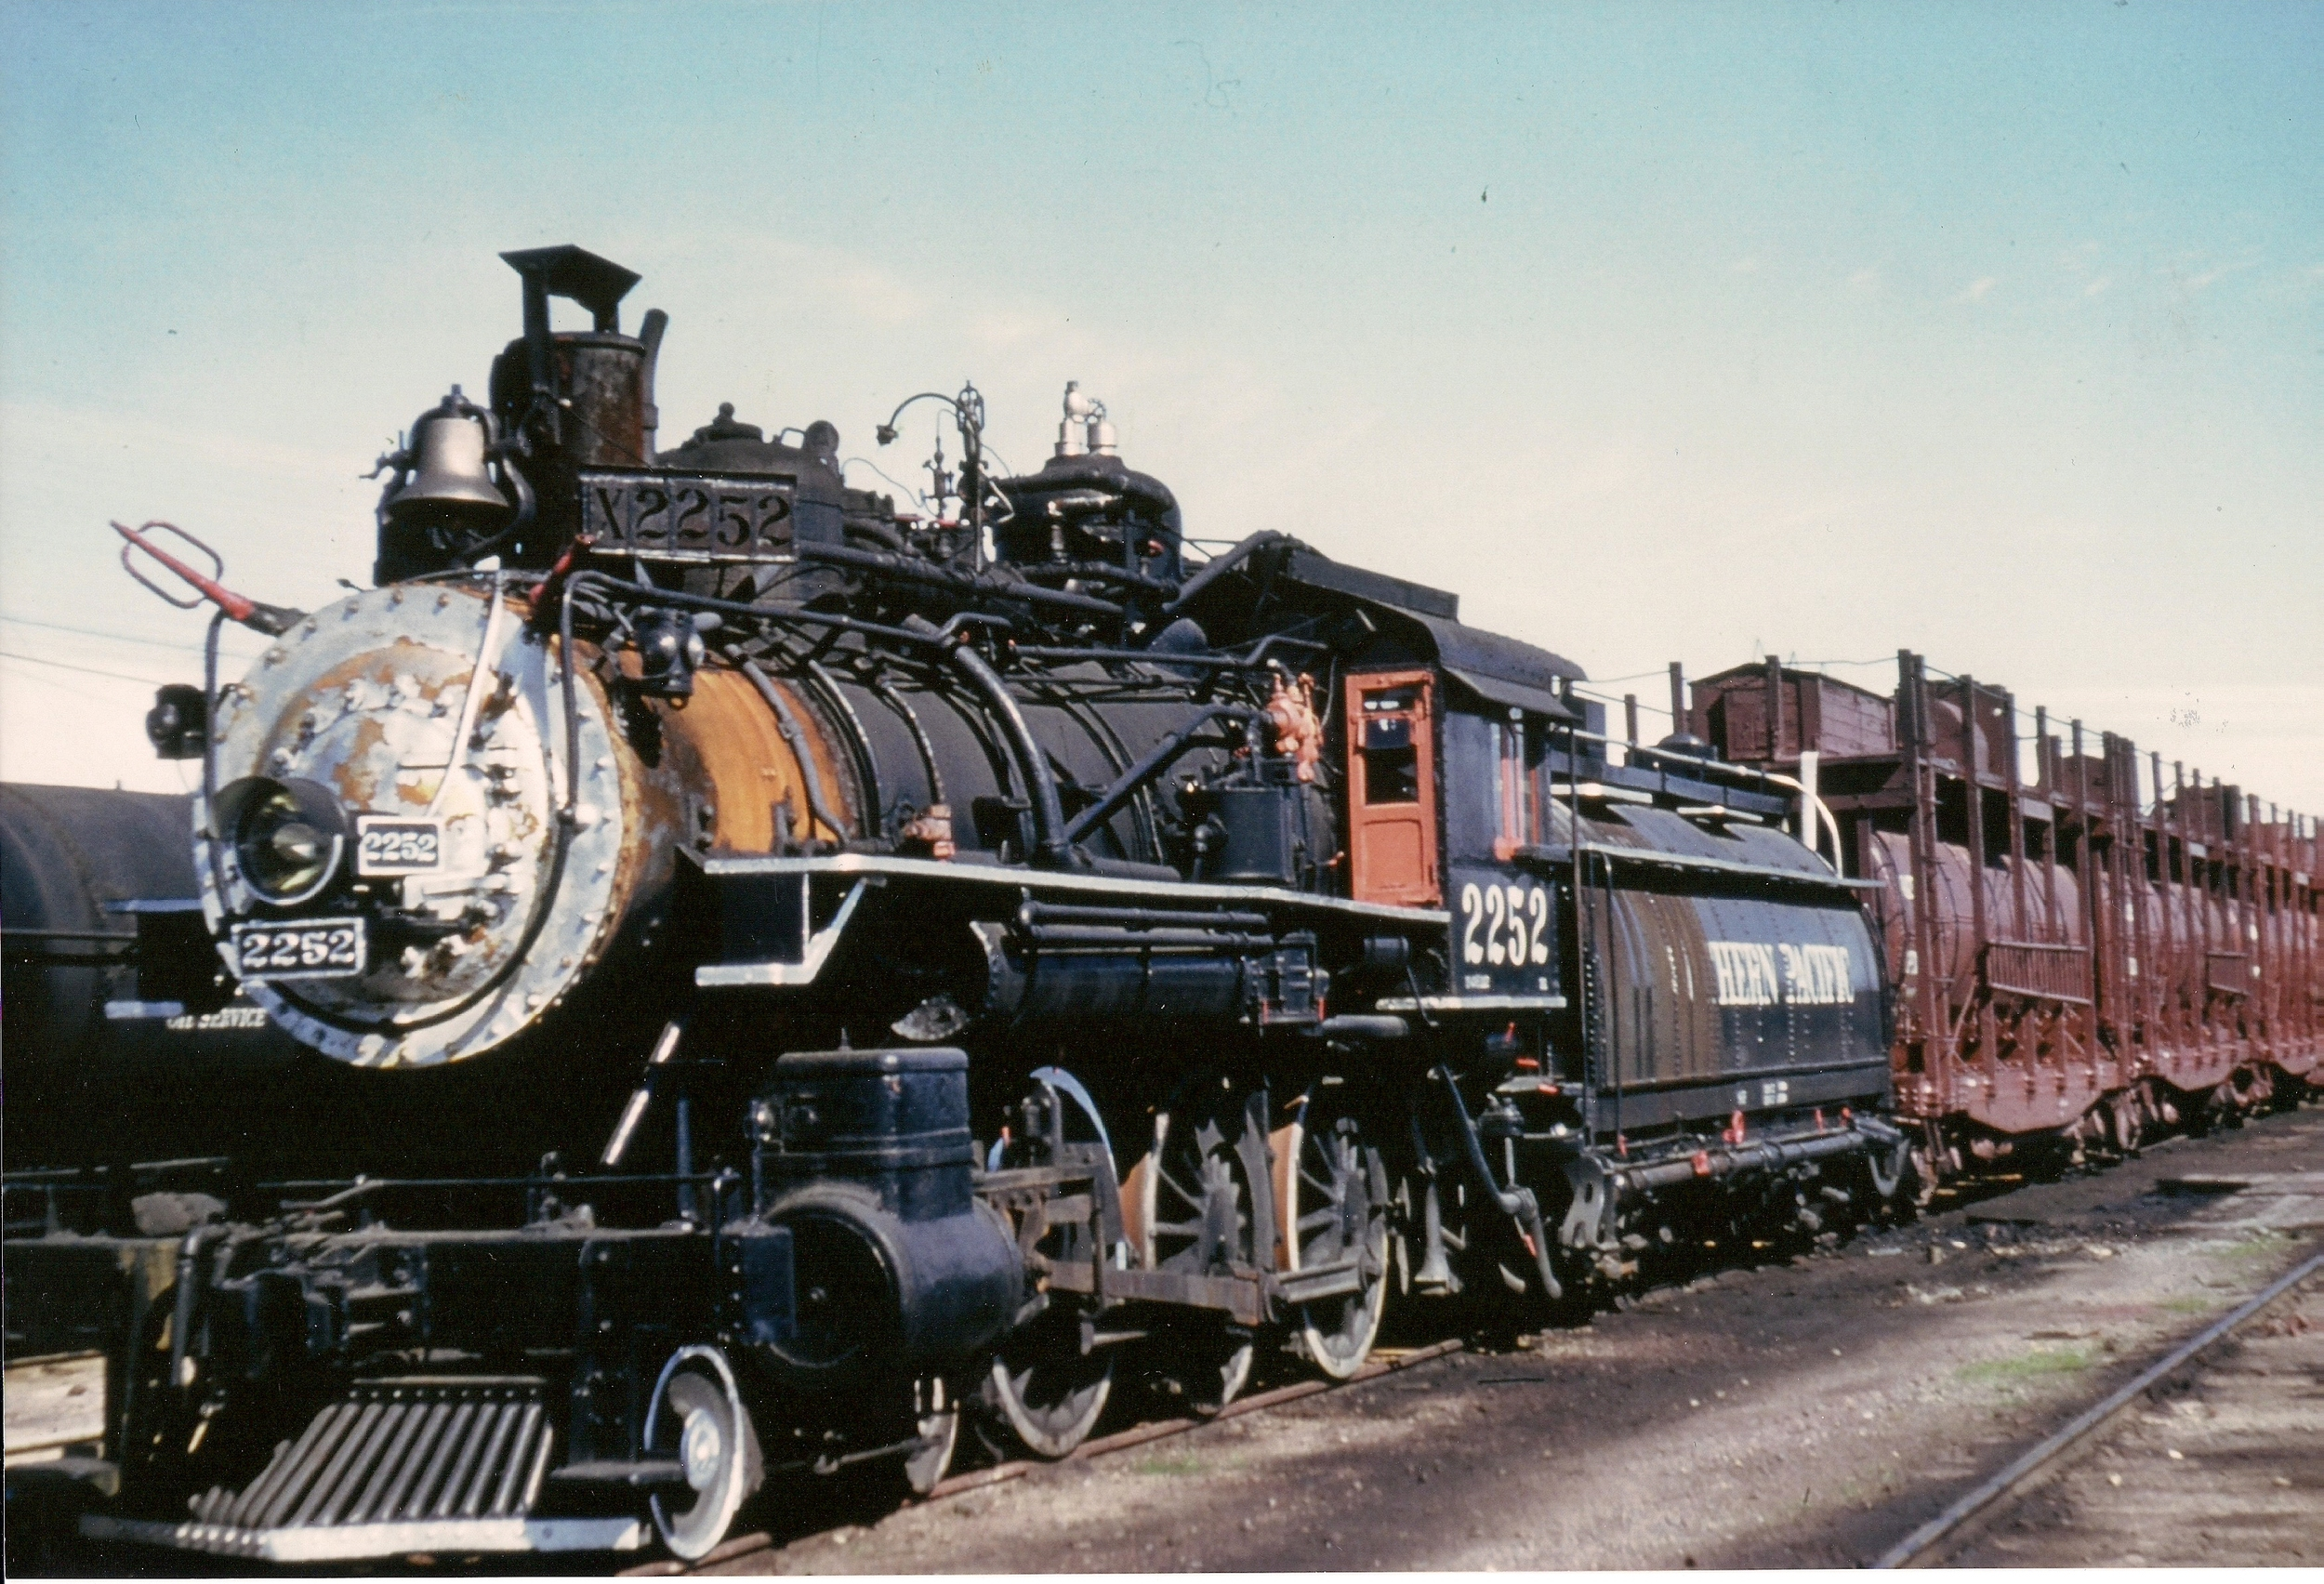 Locomotive No. 2252 in March 1956 at the time of its retirement from service. It would spend more than four decades at the Placer County Fairgrounds.